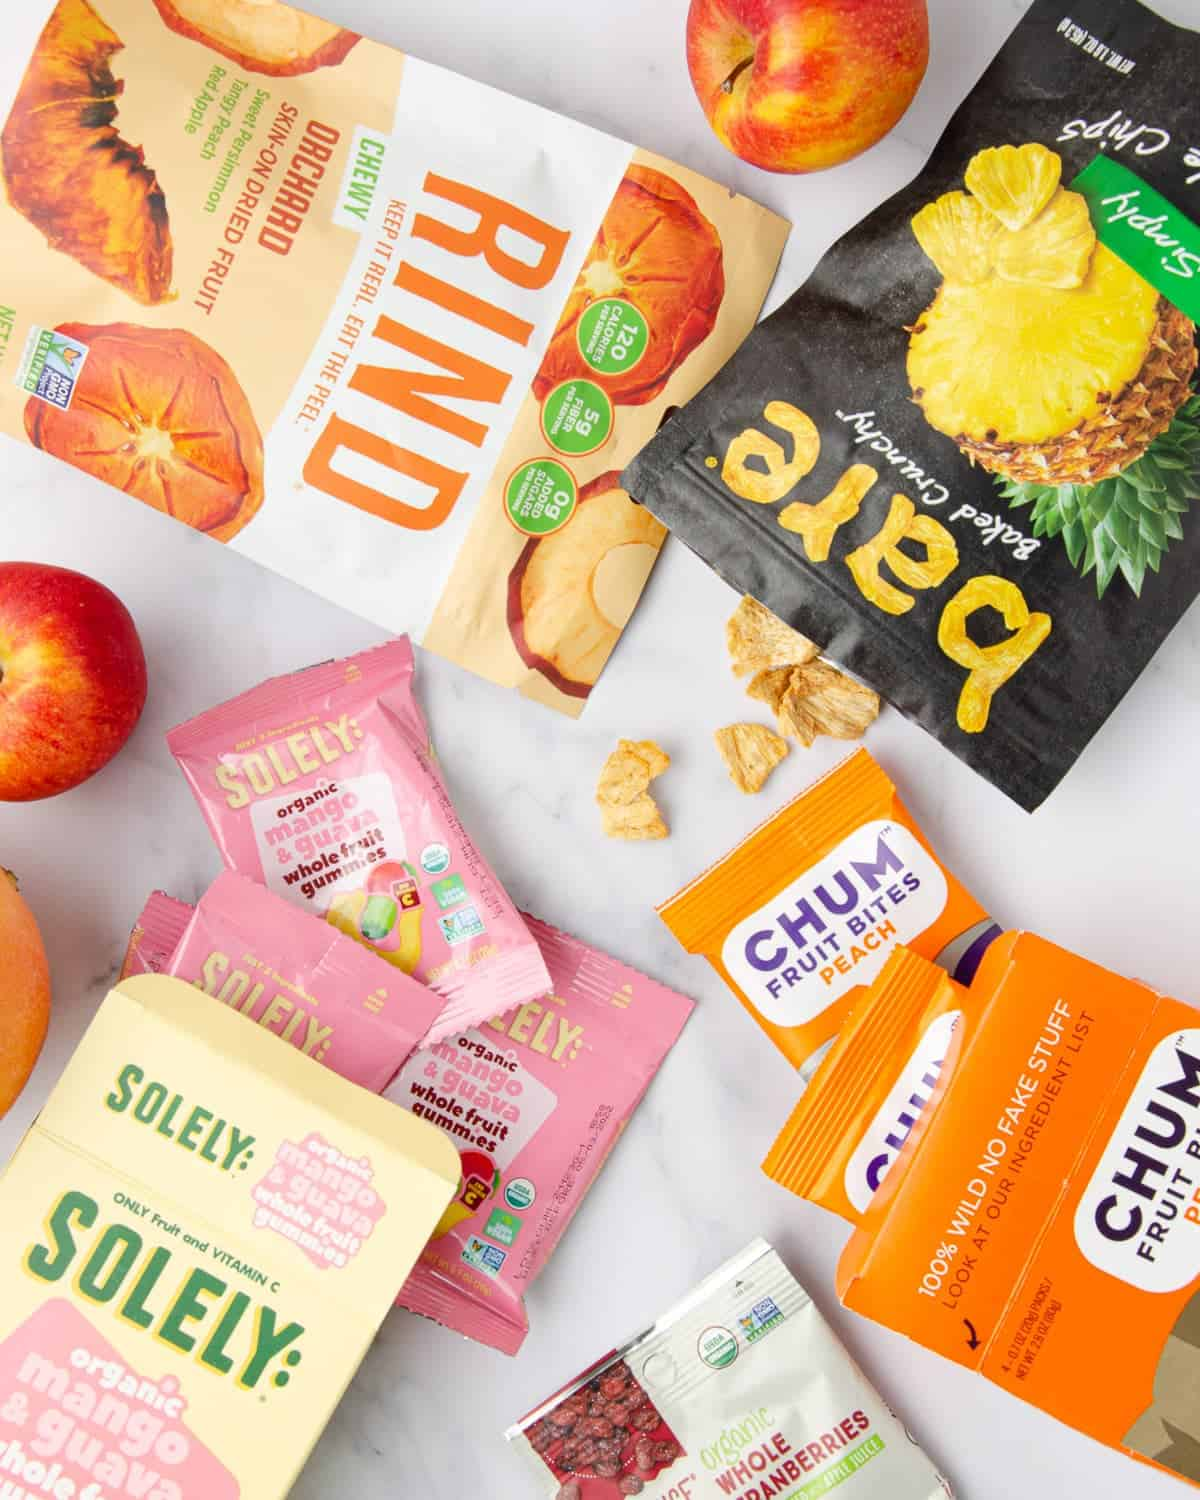 dairy free gluten free snacks featuring apples, oranges, a bag of pineapple chips, a bag of dehydrated fruits, two boxes of fruit gumies, and a bag of dried cranberries